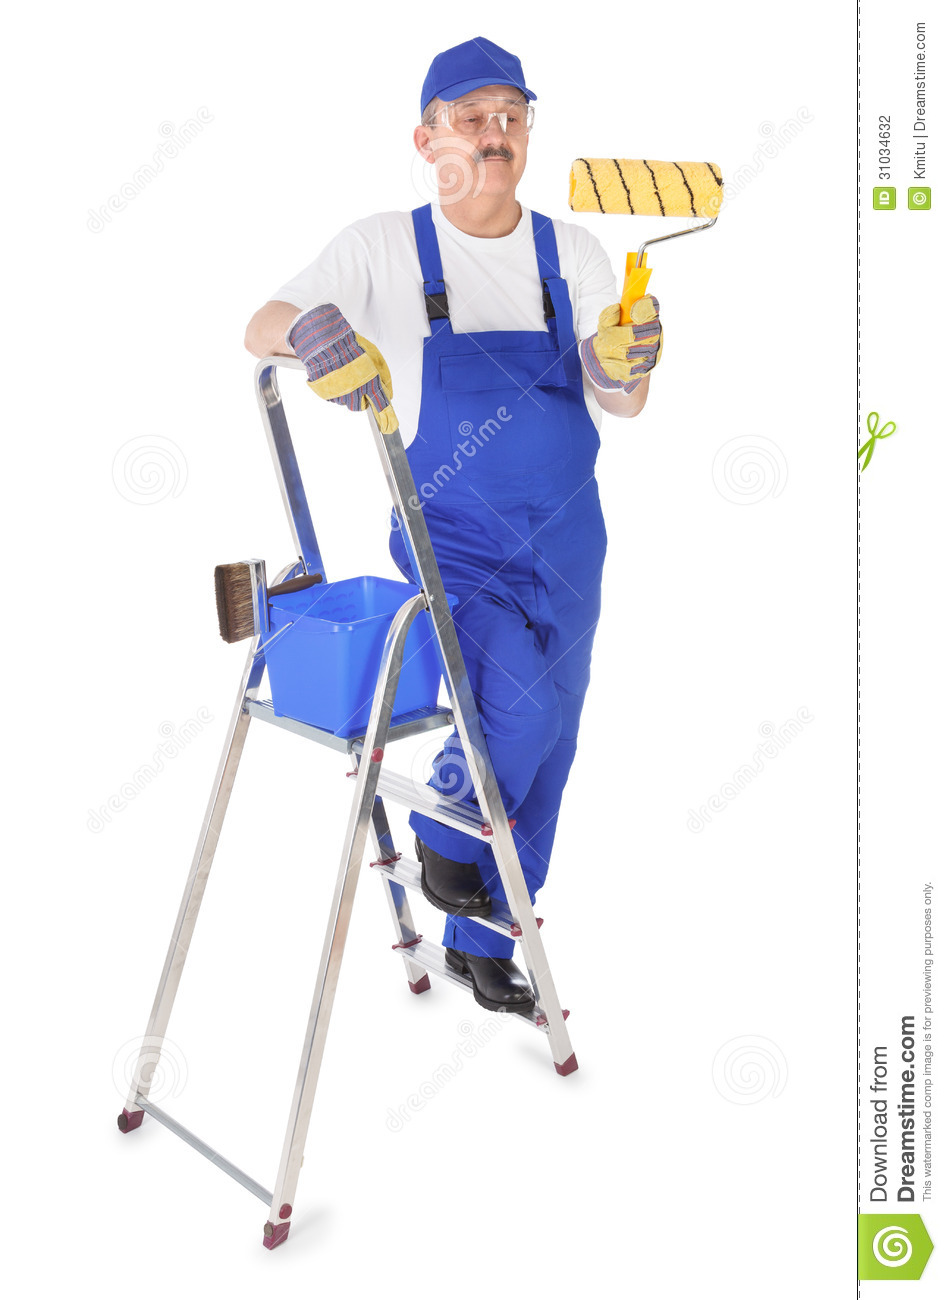 Painter On Ladder Clipart House Painter With Ladder On